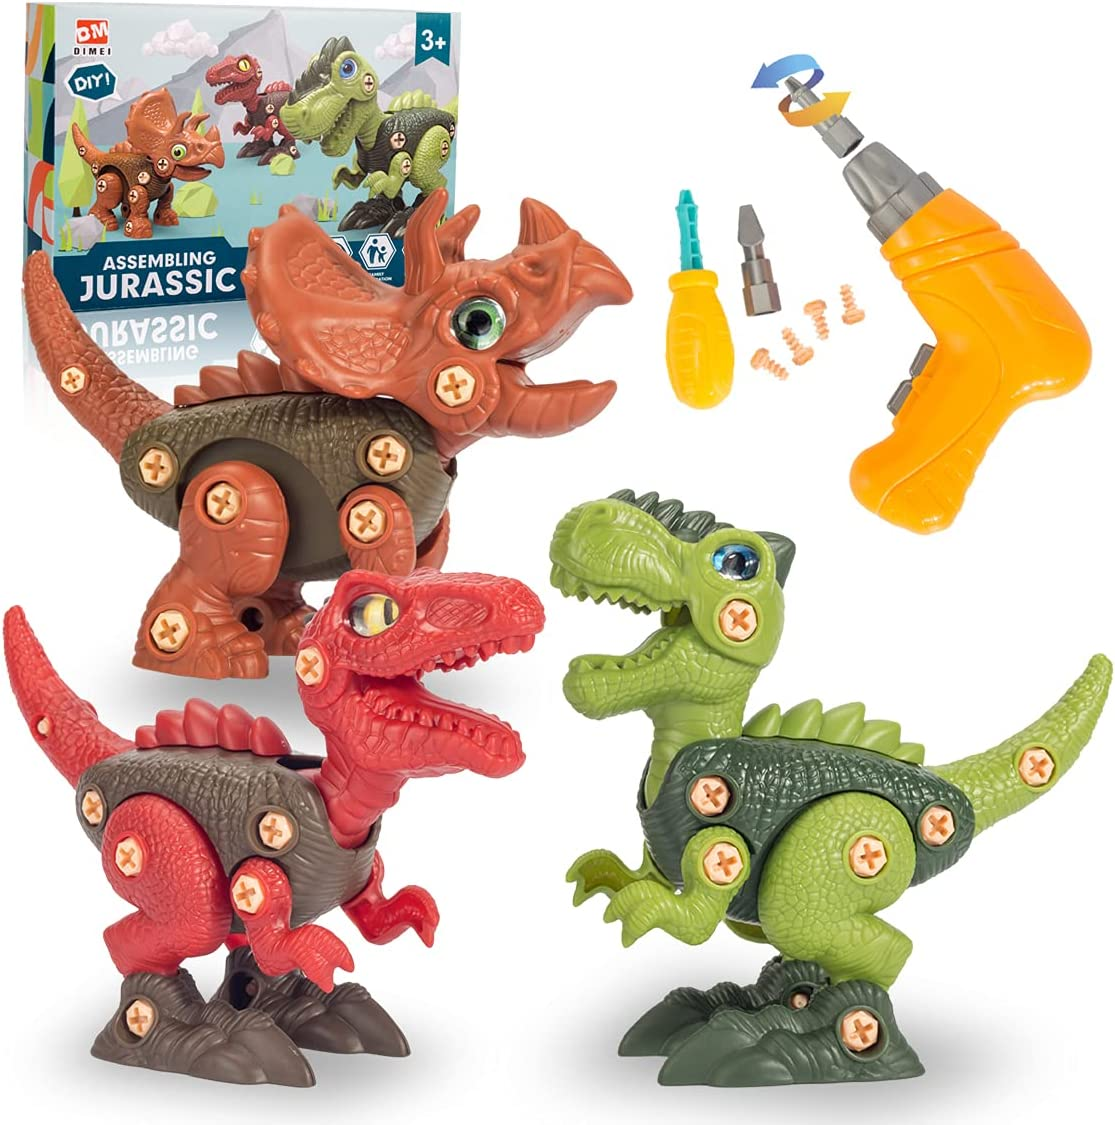 Albuquerque Mall VNVDFLM Take Apart Dinosaur Toys for Max 66% OFF 3 4 Years ST 7 Boys Old 5 6